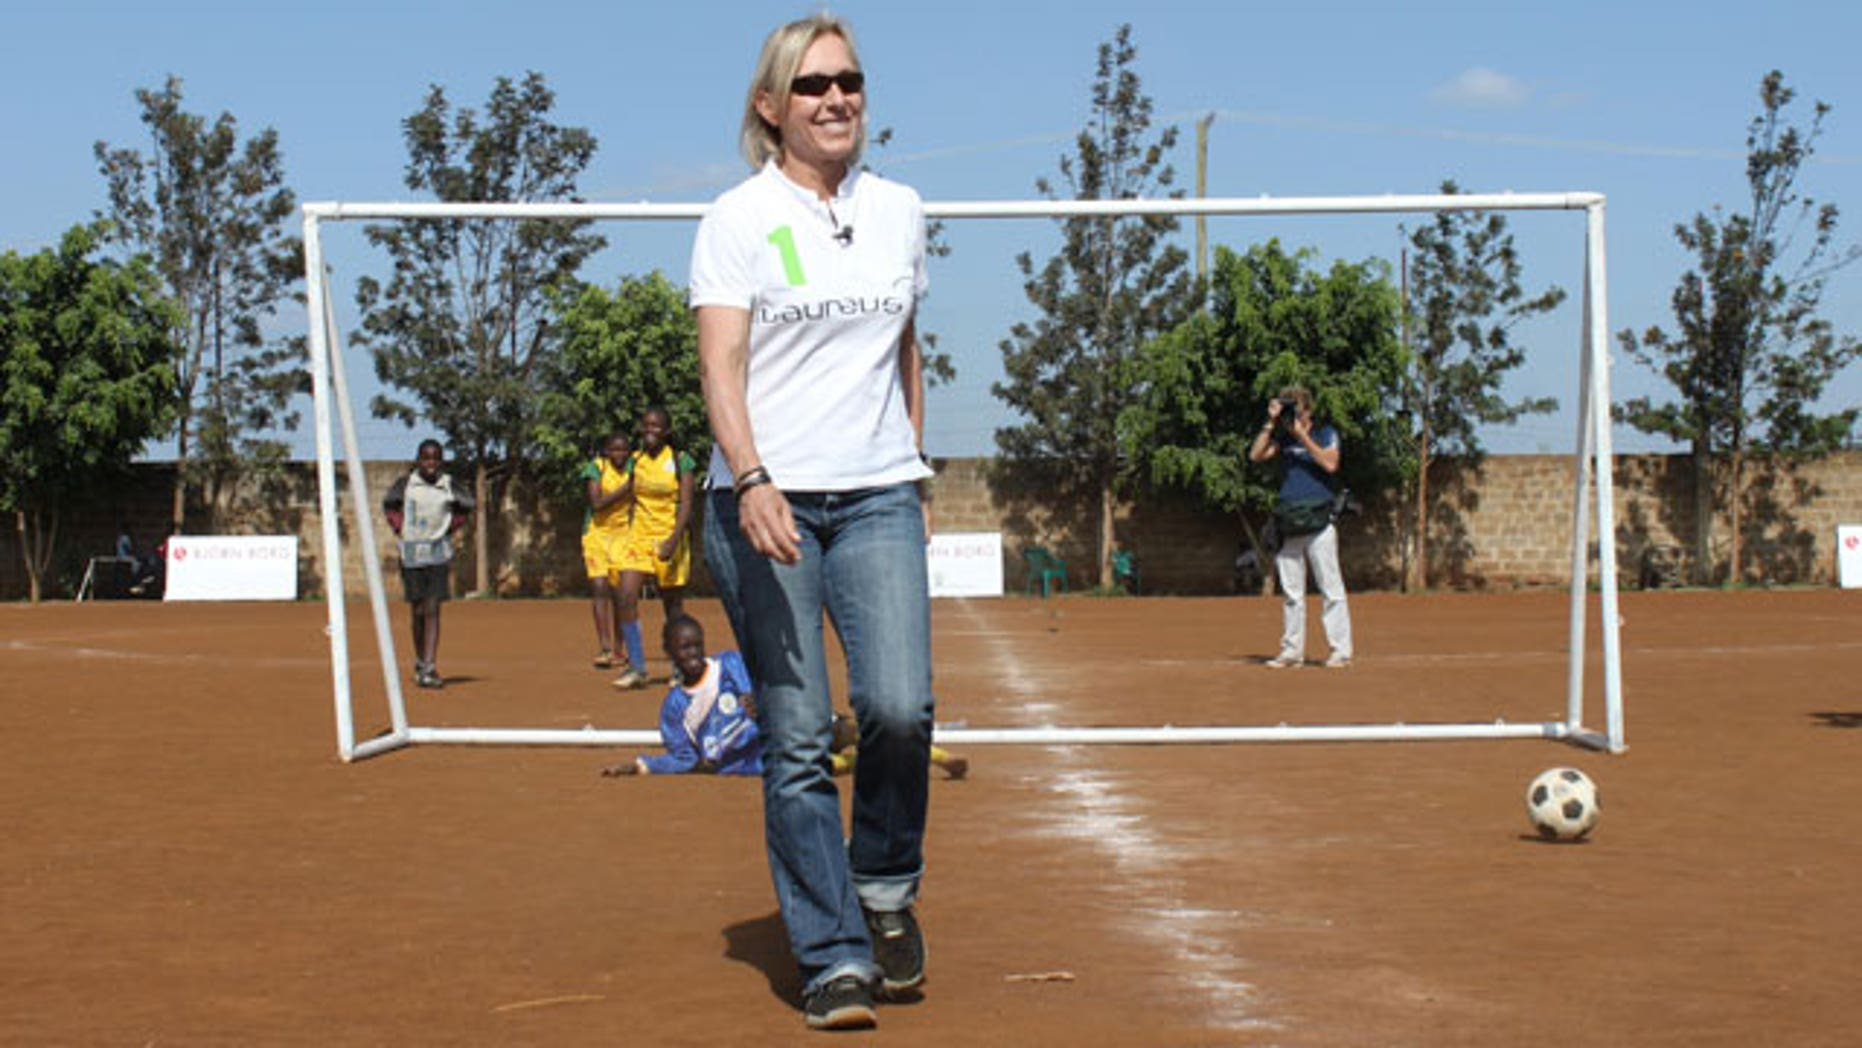 Tennis great Martina Navratilova celebrates after scoring a goal during a demonstration at a soccer game in Nairobi, Kenya on Saturday, Dec. 4, 2010. Navratilova next week will climb Tanzania's Mount Kilimajaro to raise money and awareness for the Laureus Sport for Good Foundation.